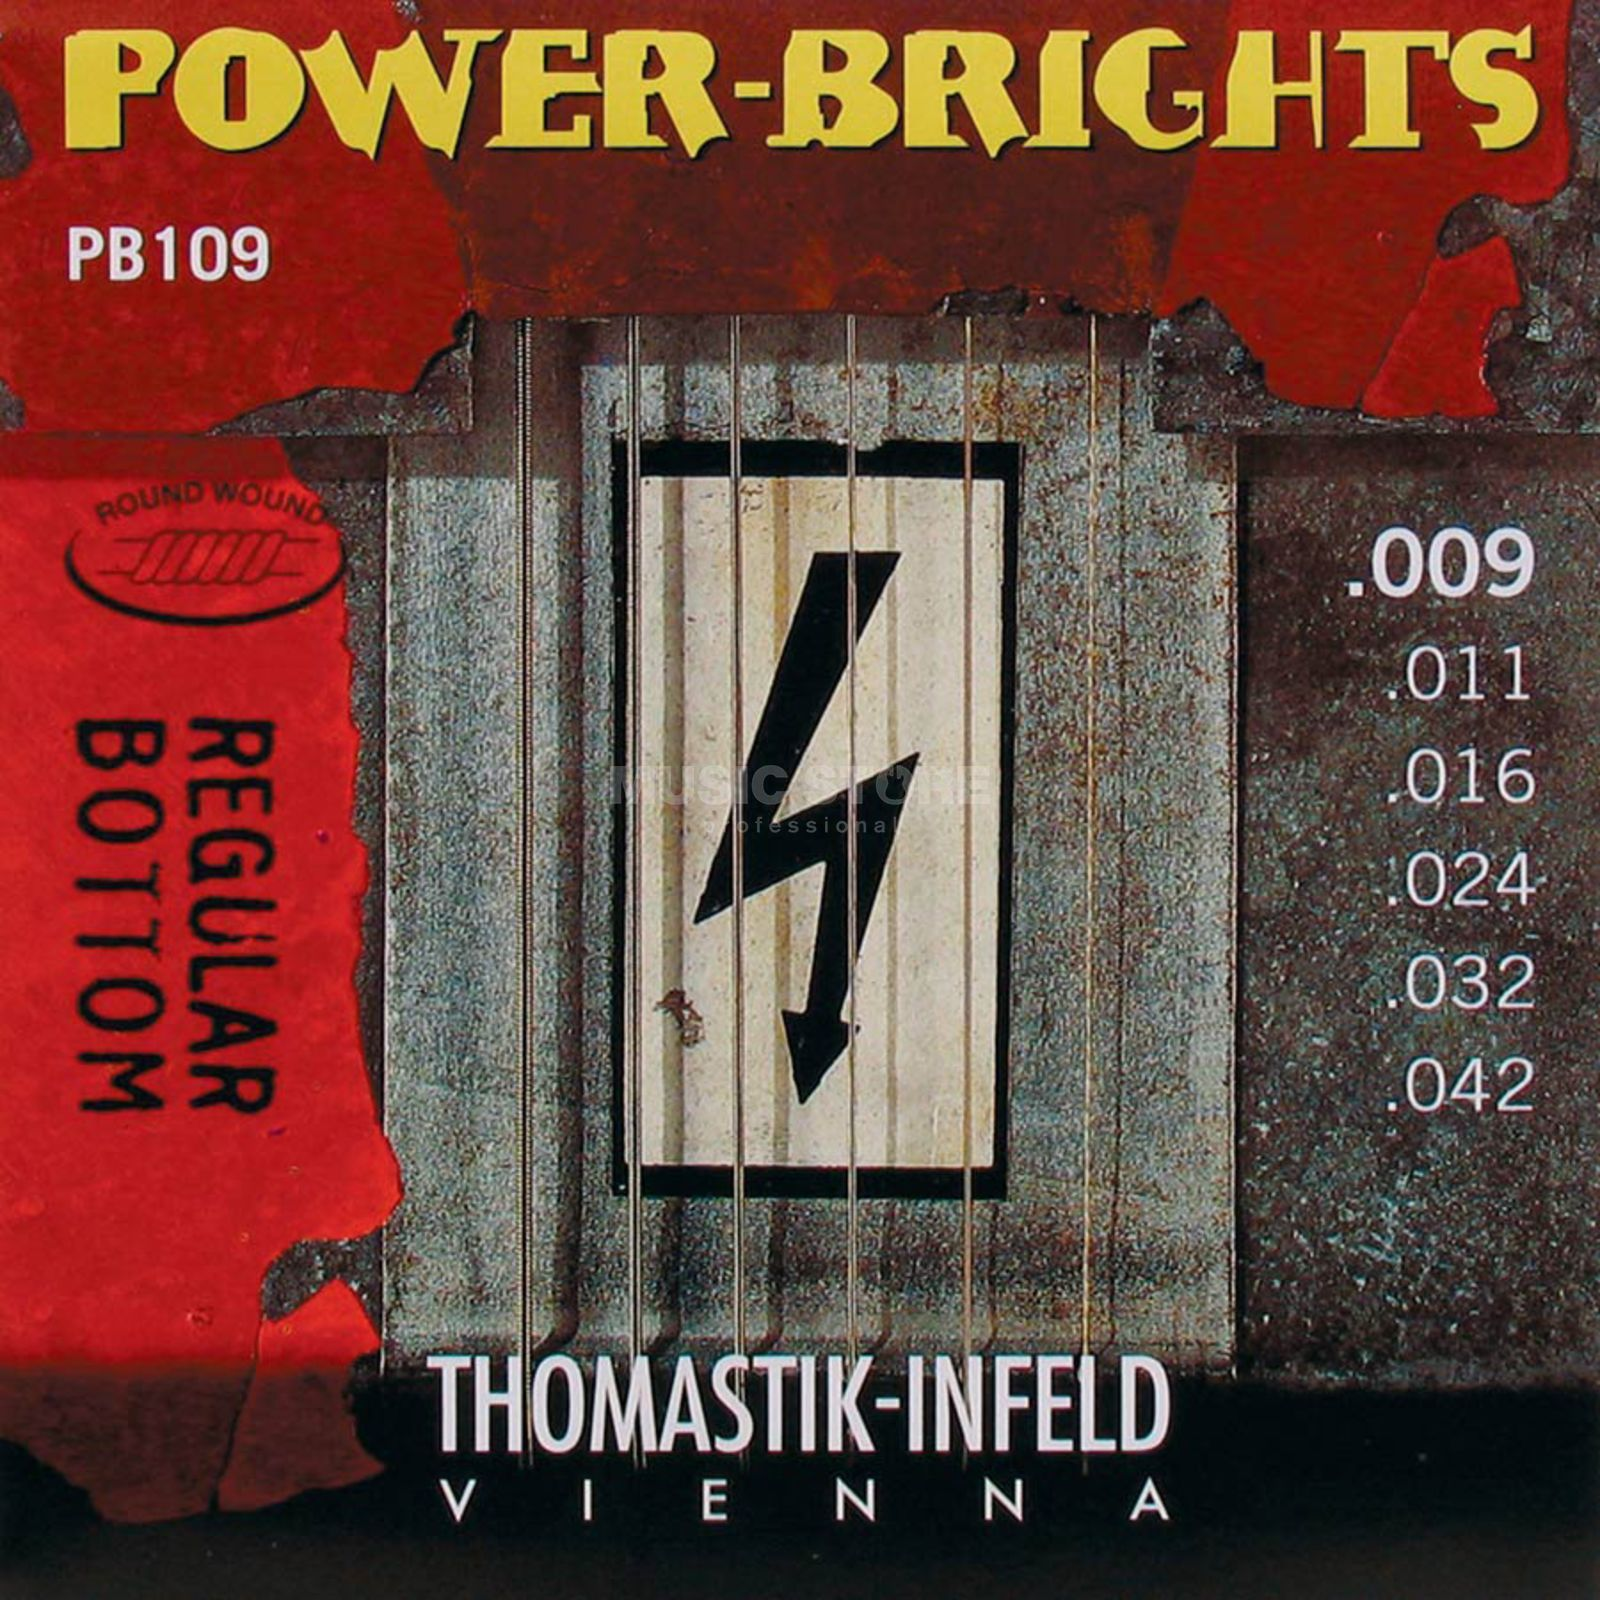 Thomastik E-Guitar Strings PB 109 09-42 Power Brights Regular Bottom Zdjęcie produktu